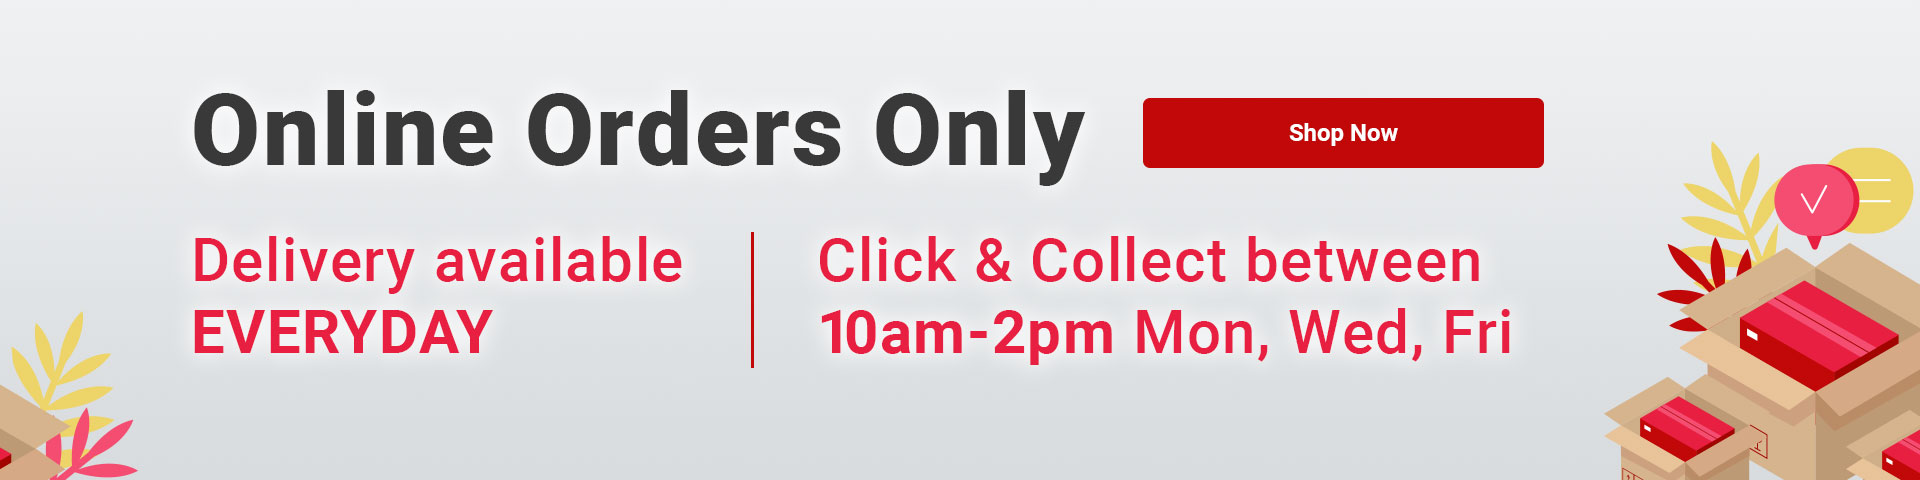 Online orders only. Click & Collect Available between 10am-2pm Monday, Wednesday, Friday. Shop Now